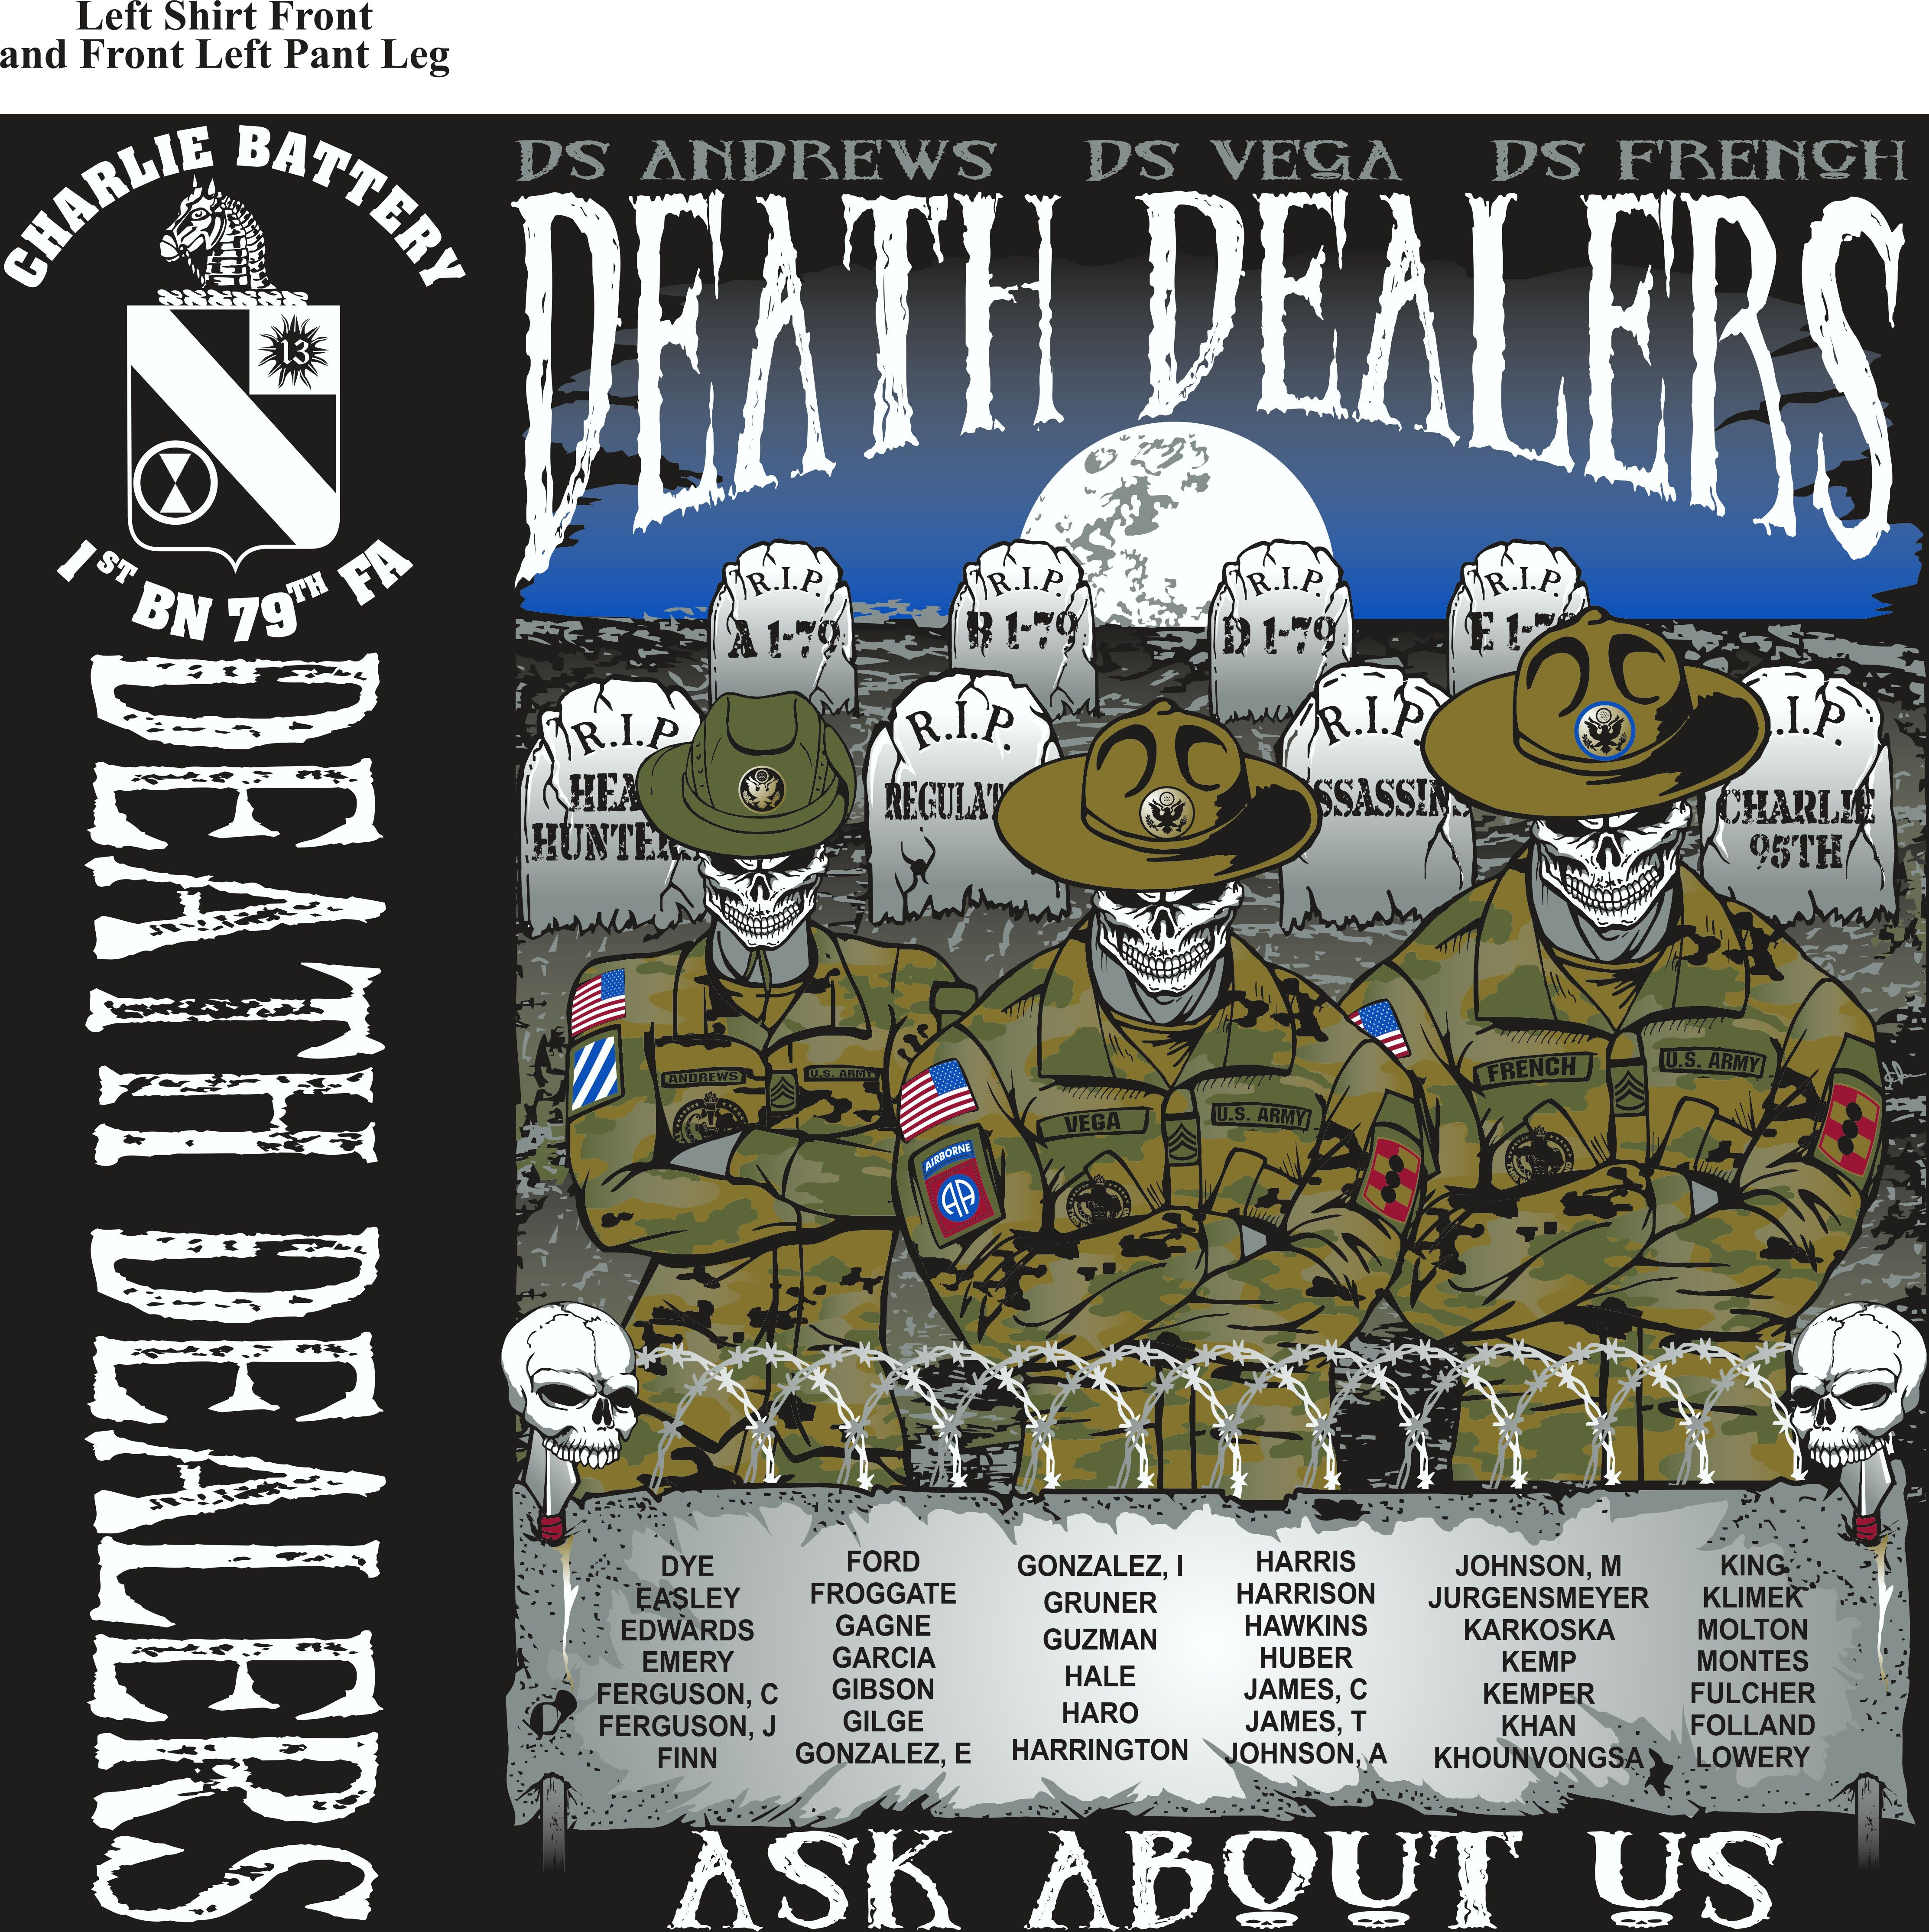 Platoon Shirts (2nd generation print) CHARLIE 1st 79th DEATH DEALERS MAY 2018